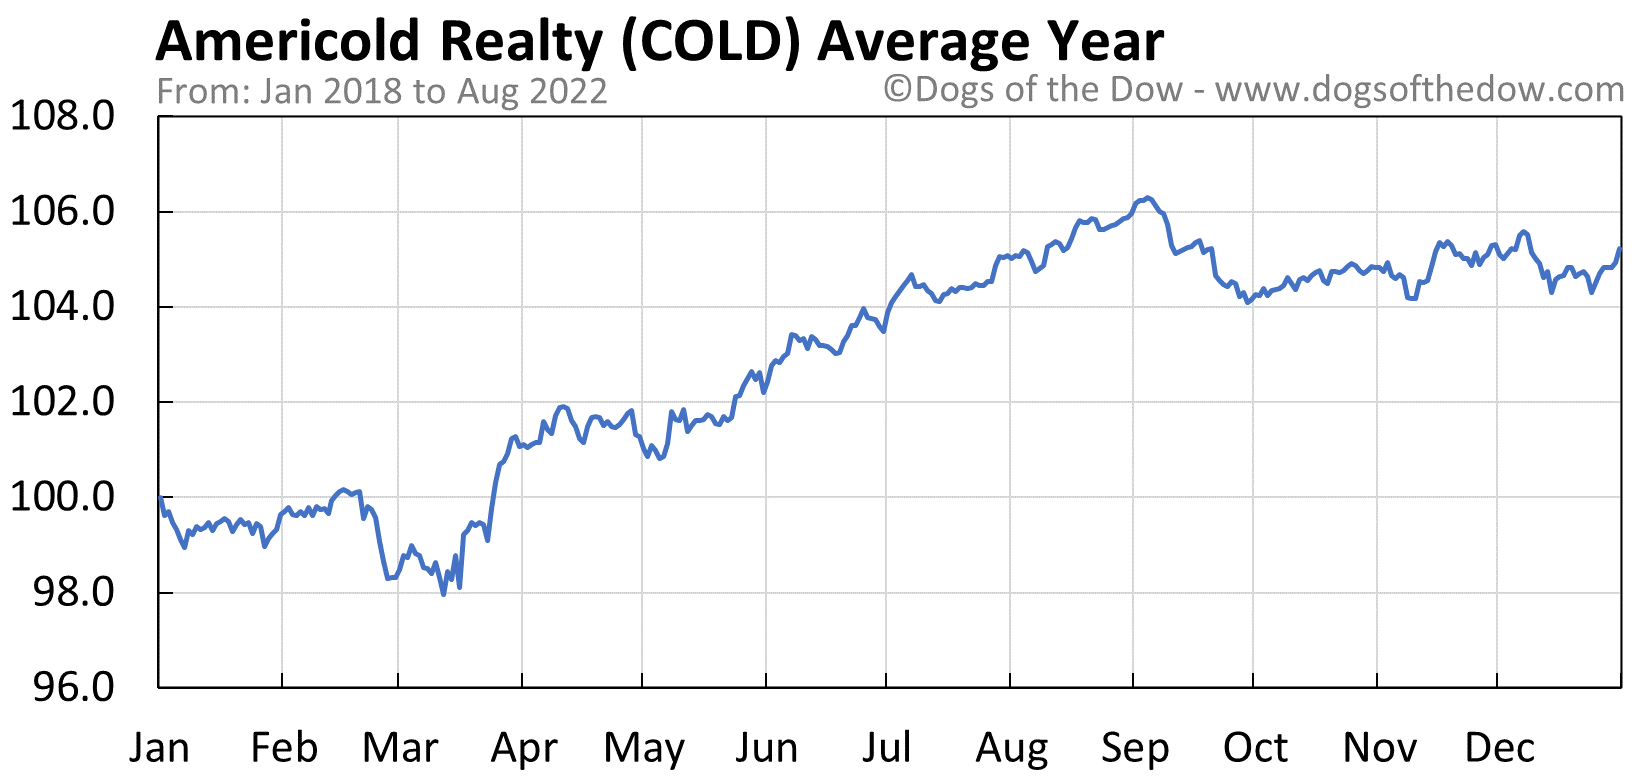 COLD average year chart